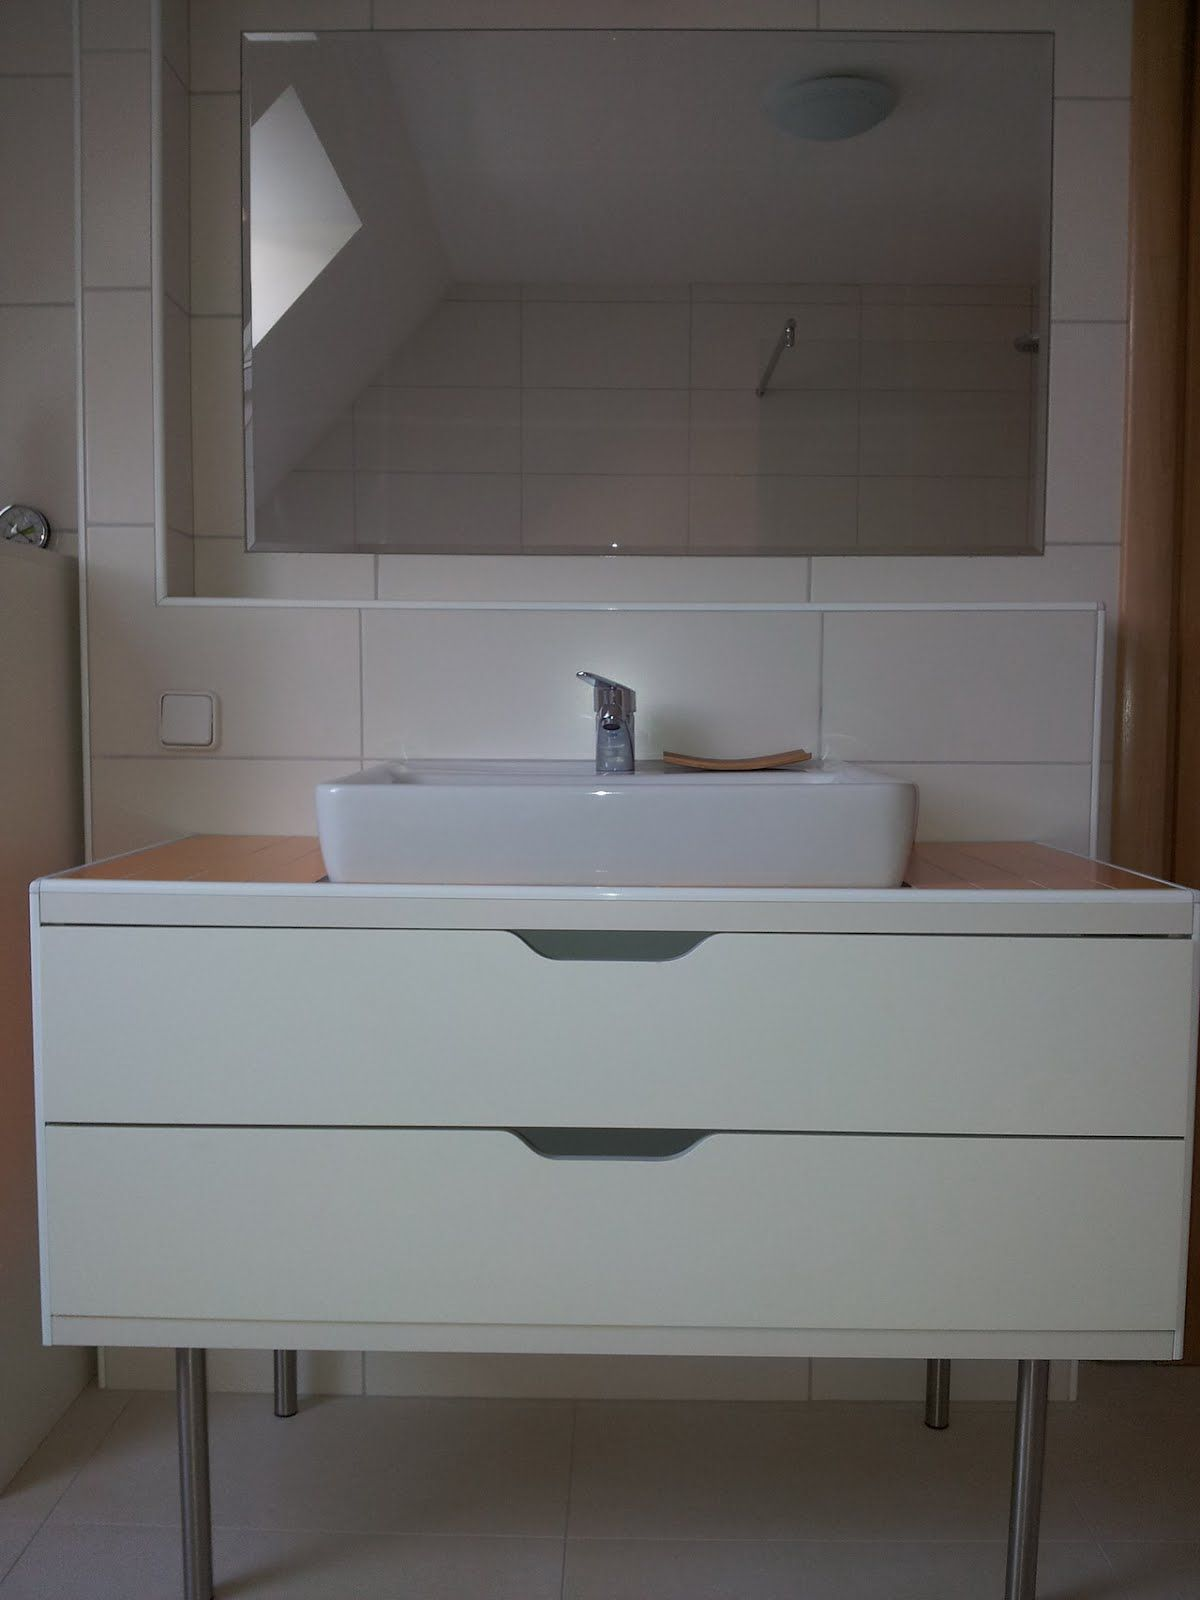 My stolmen vanity unit casa de banho bathroom - Vanities for small bathrooms ikea ...